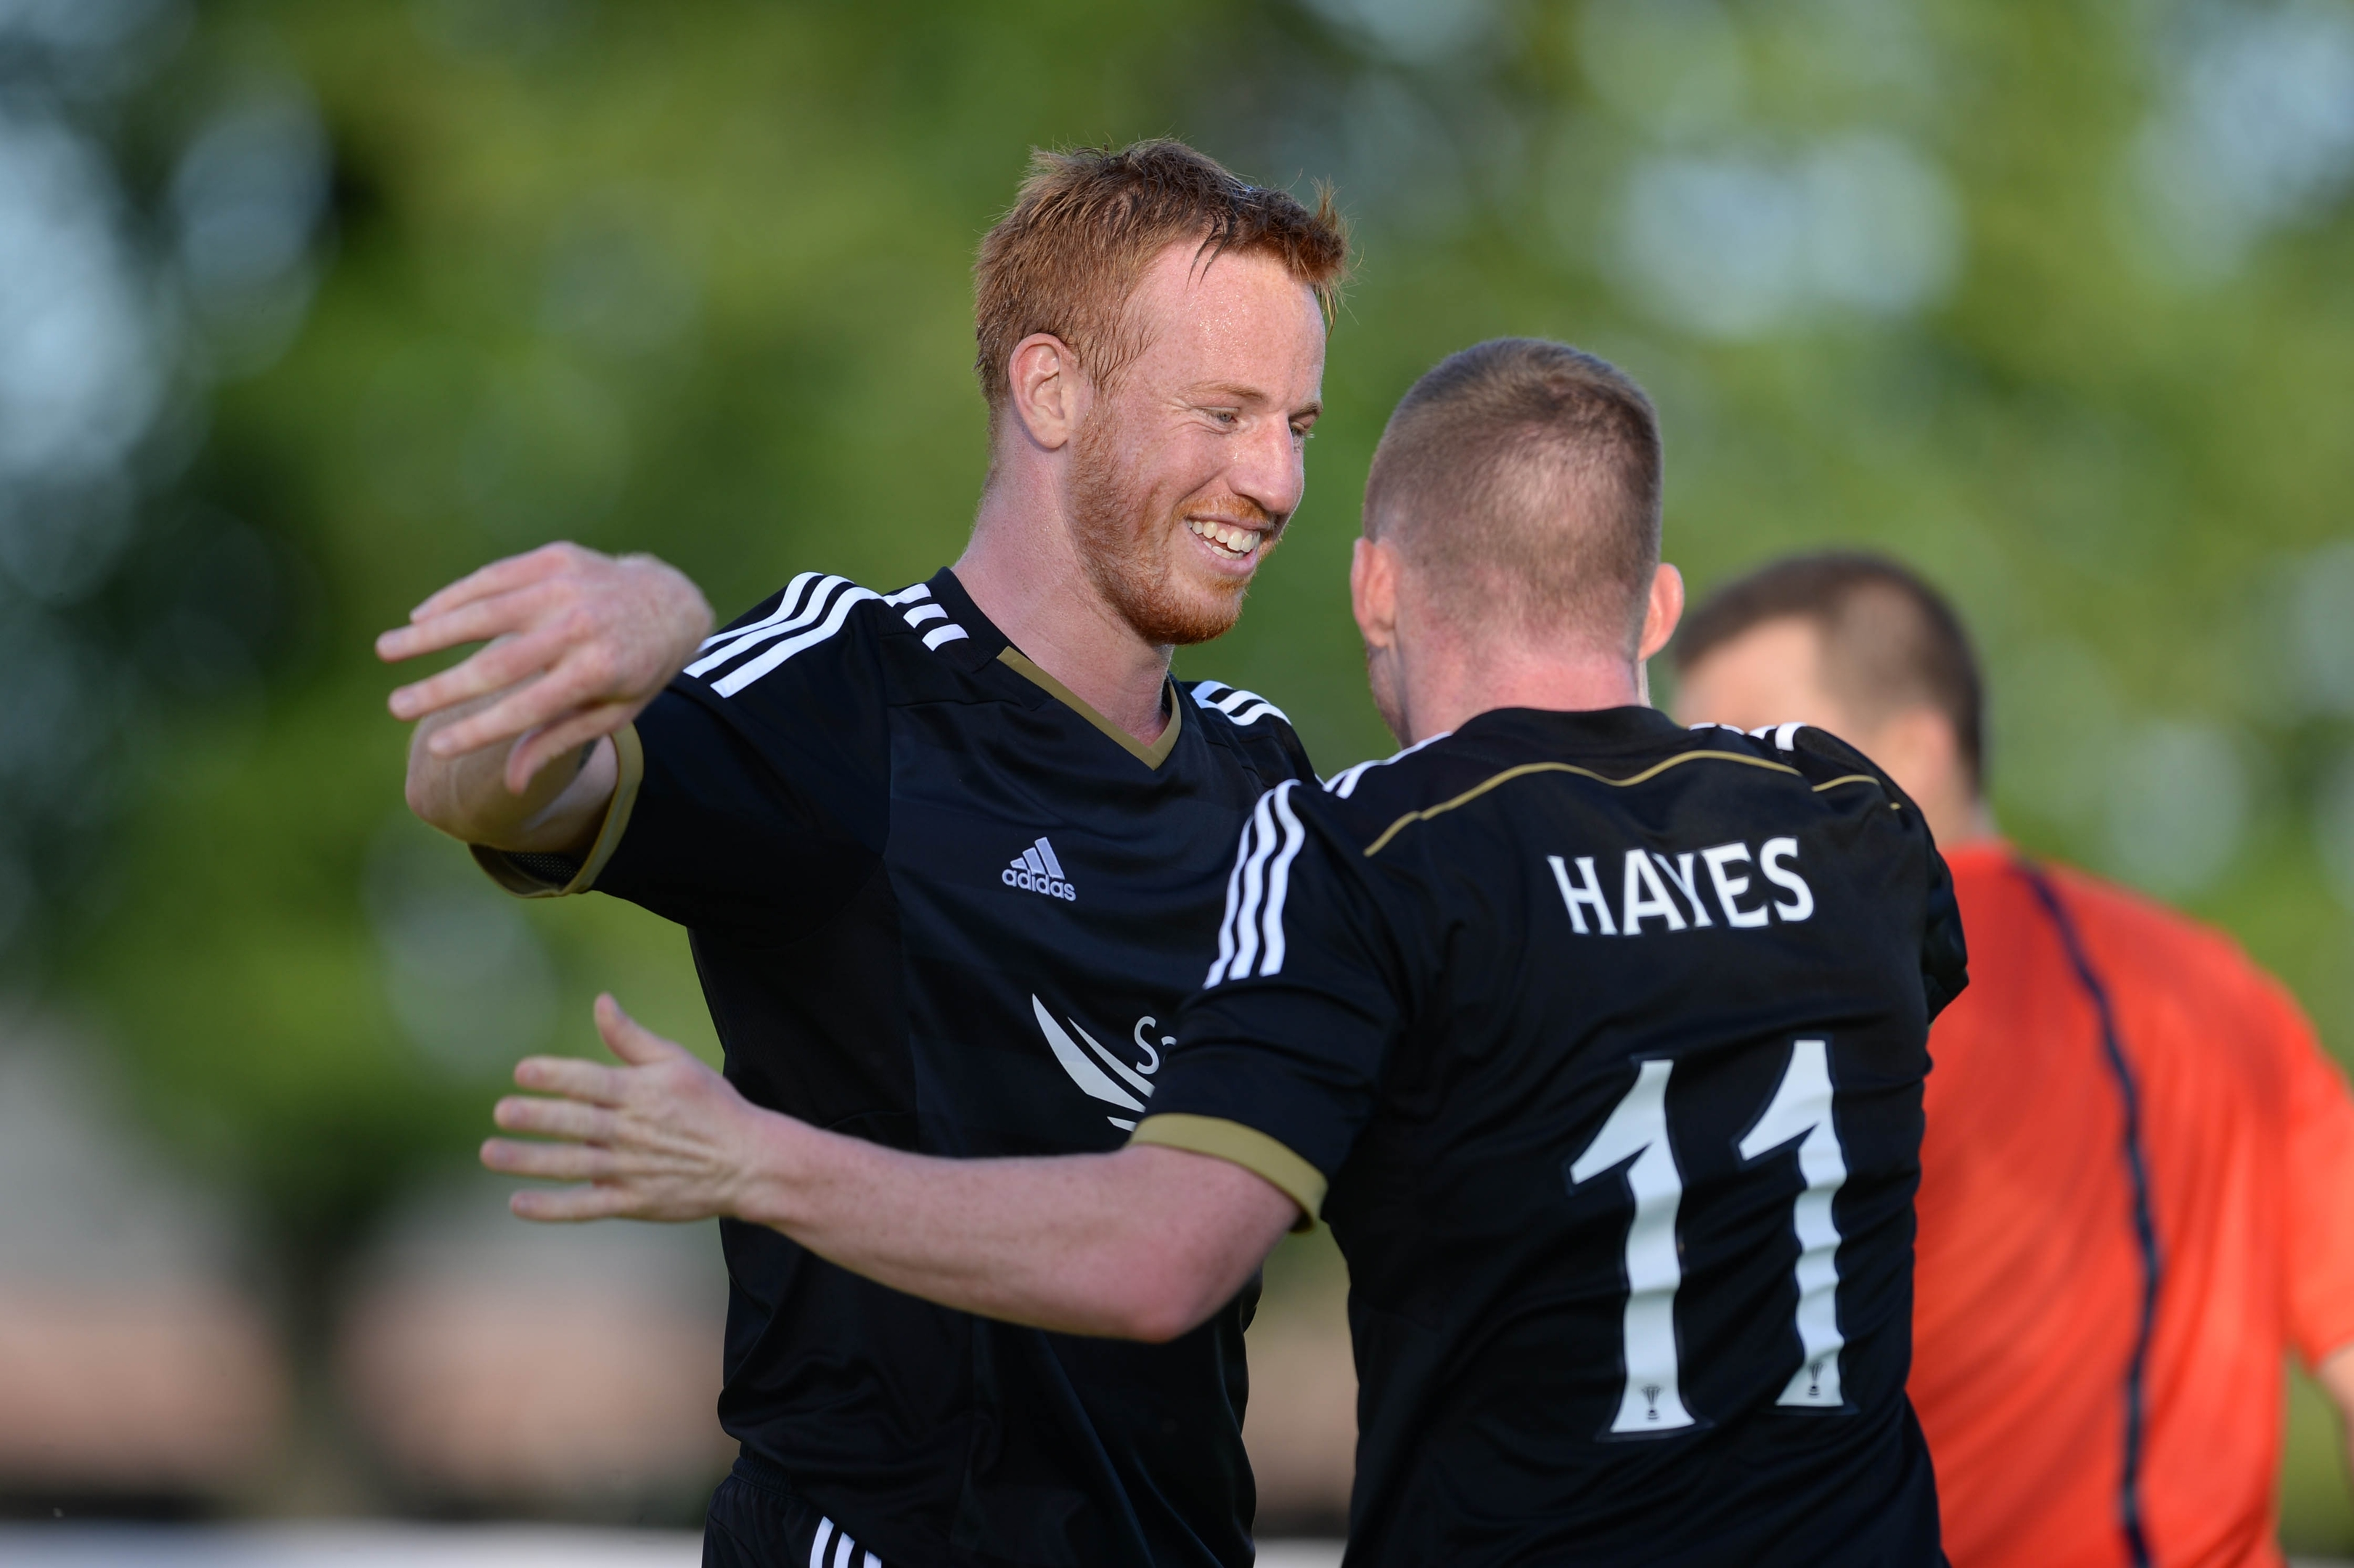 Adam Rooney celebrates a goal with former Dons team-mate Jonny Hayes